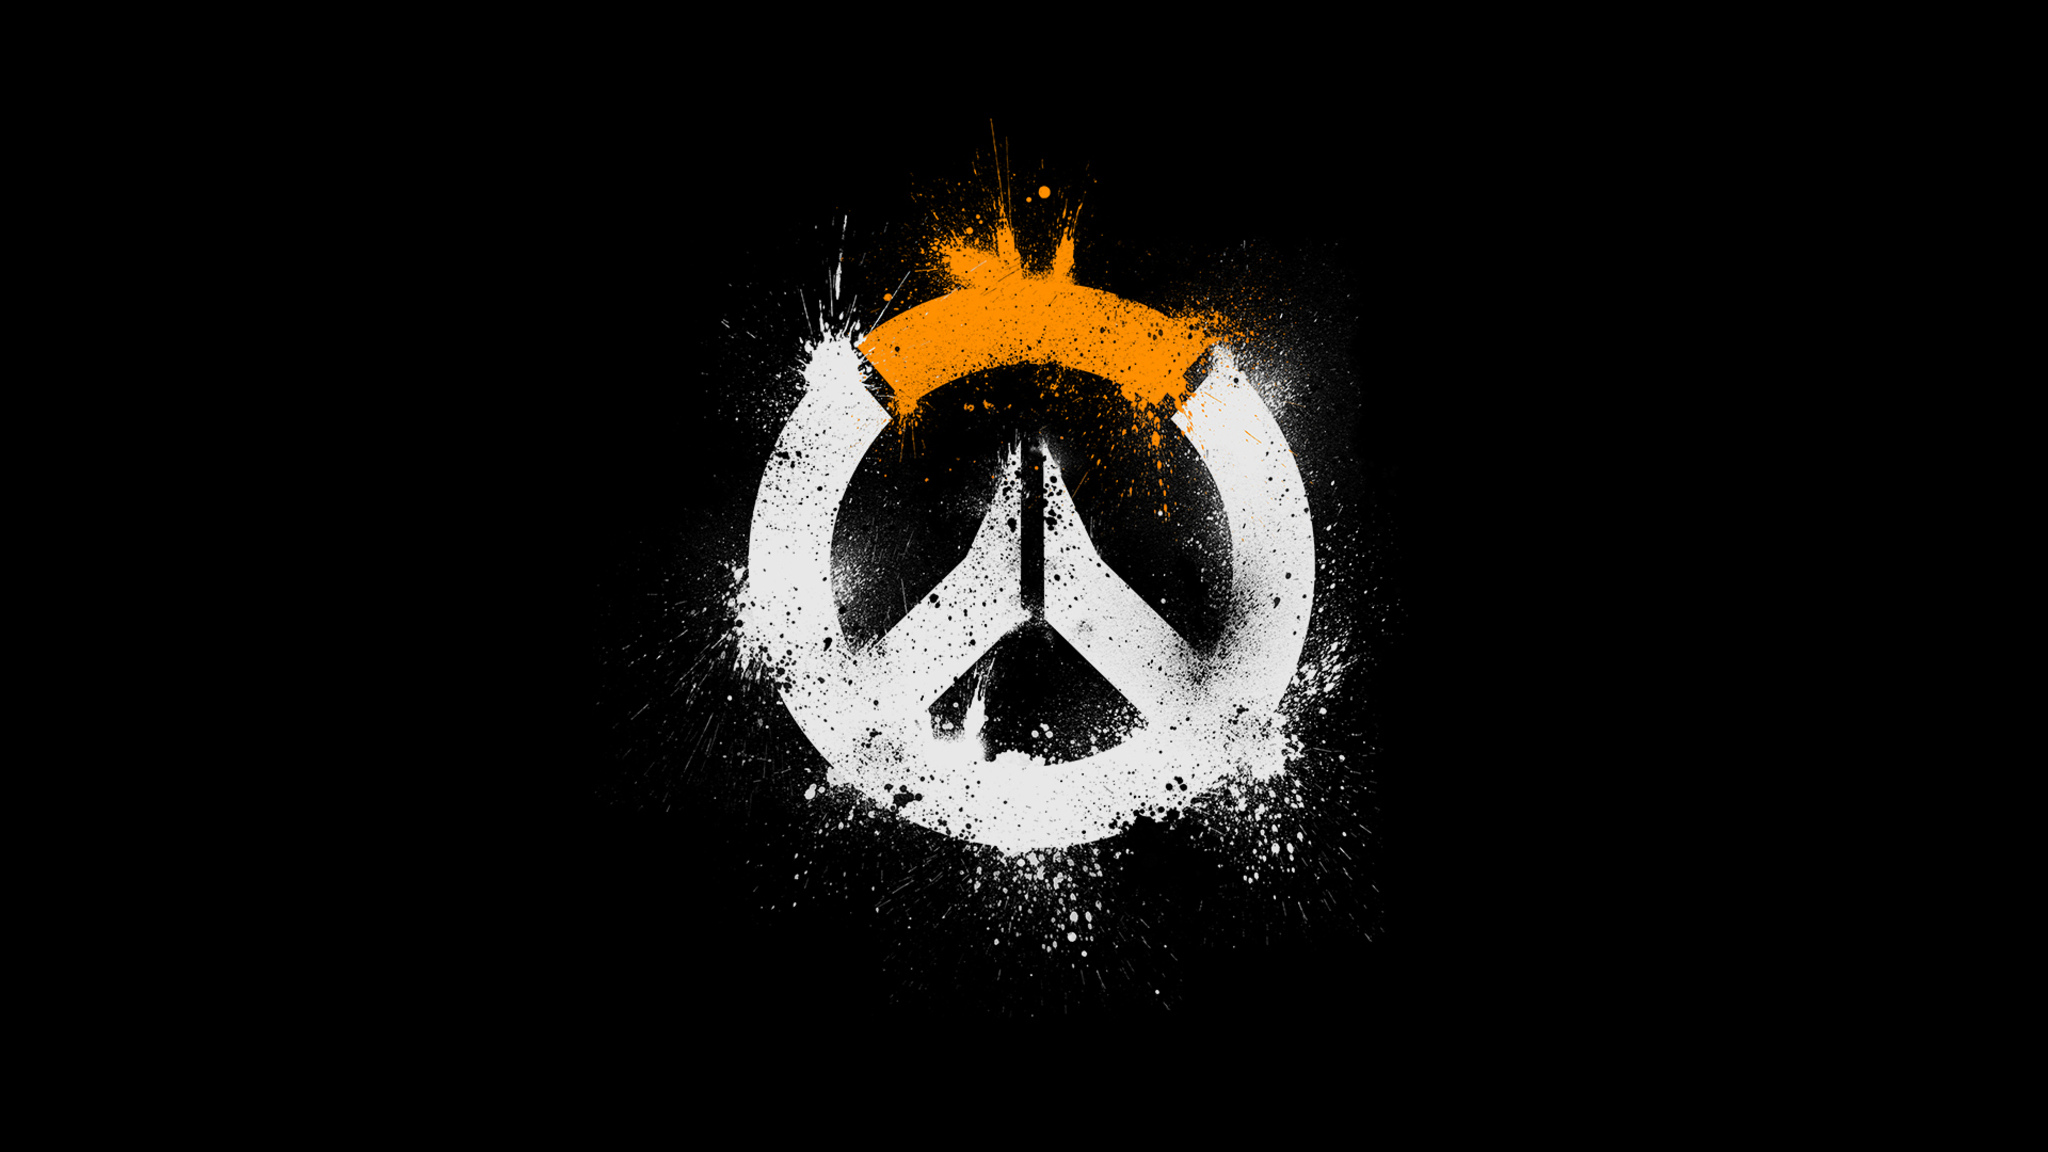 Cute Wallpapers For Girls  2048x1152 Overwatch Logo Hd 2048x1152 Resolution Hd 4k